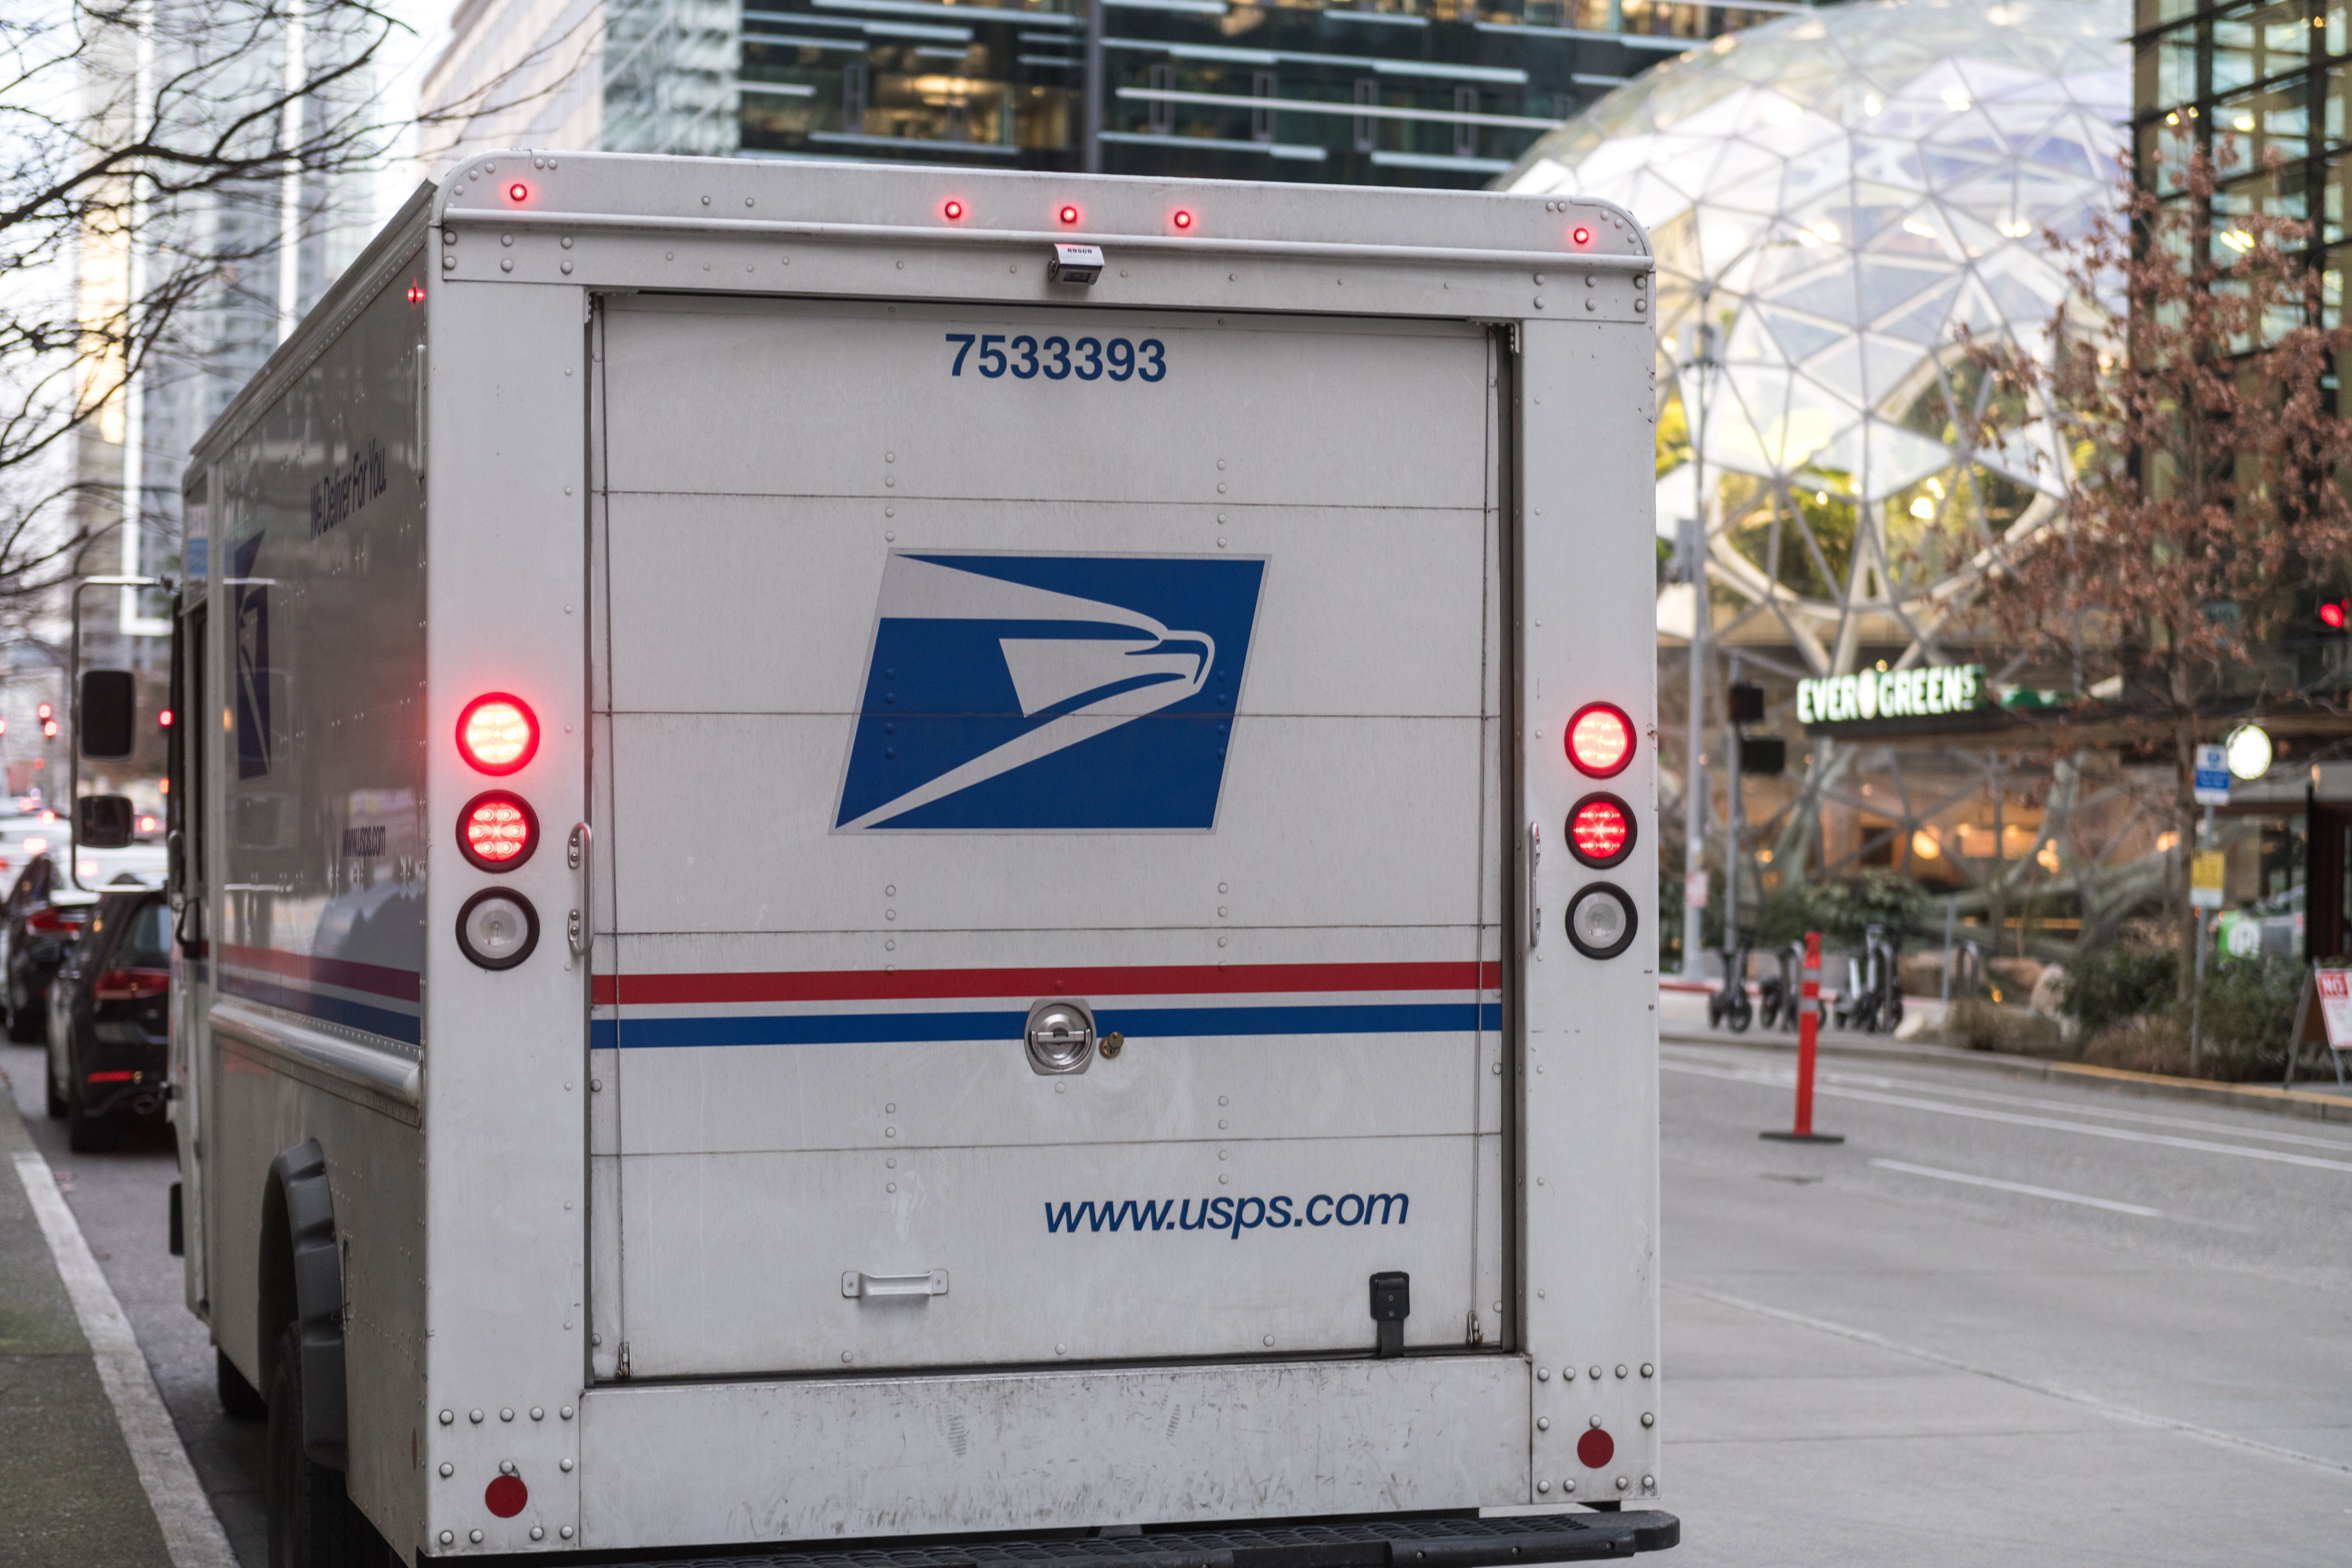 When the mail isn't reliable, it creates an opening for those who want to erode trust in the U.S. Postal Service and in